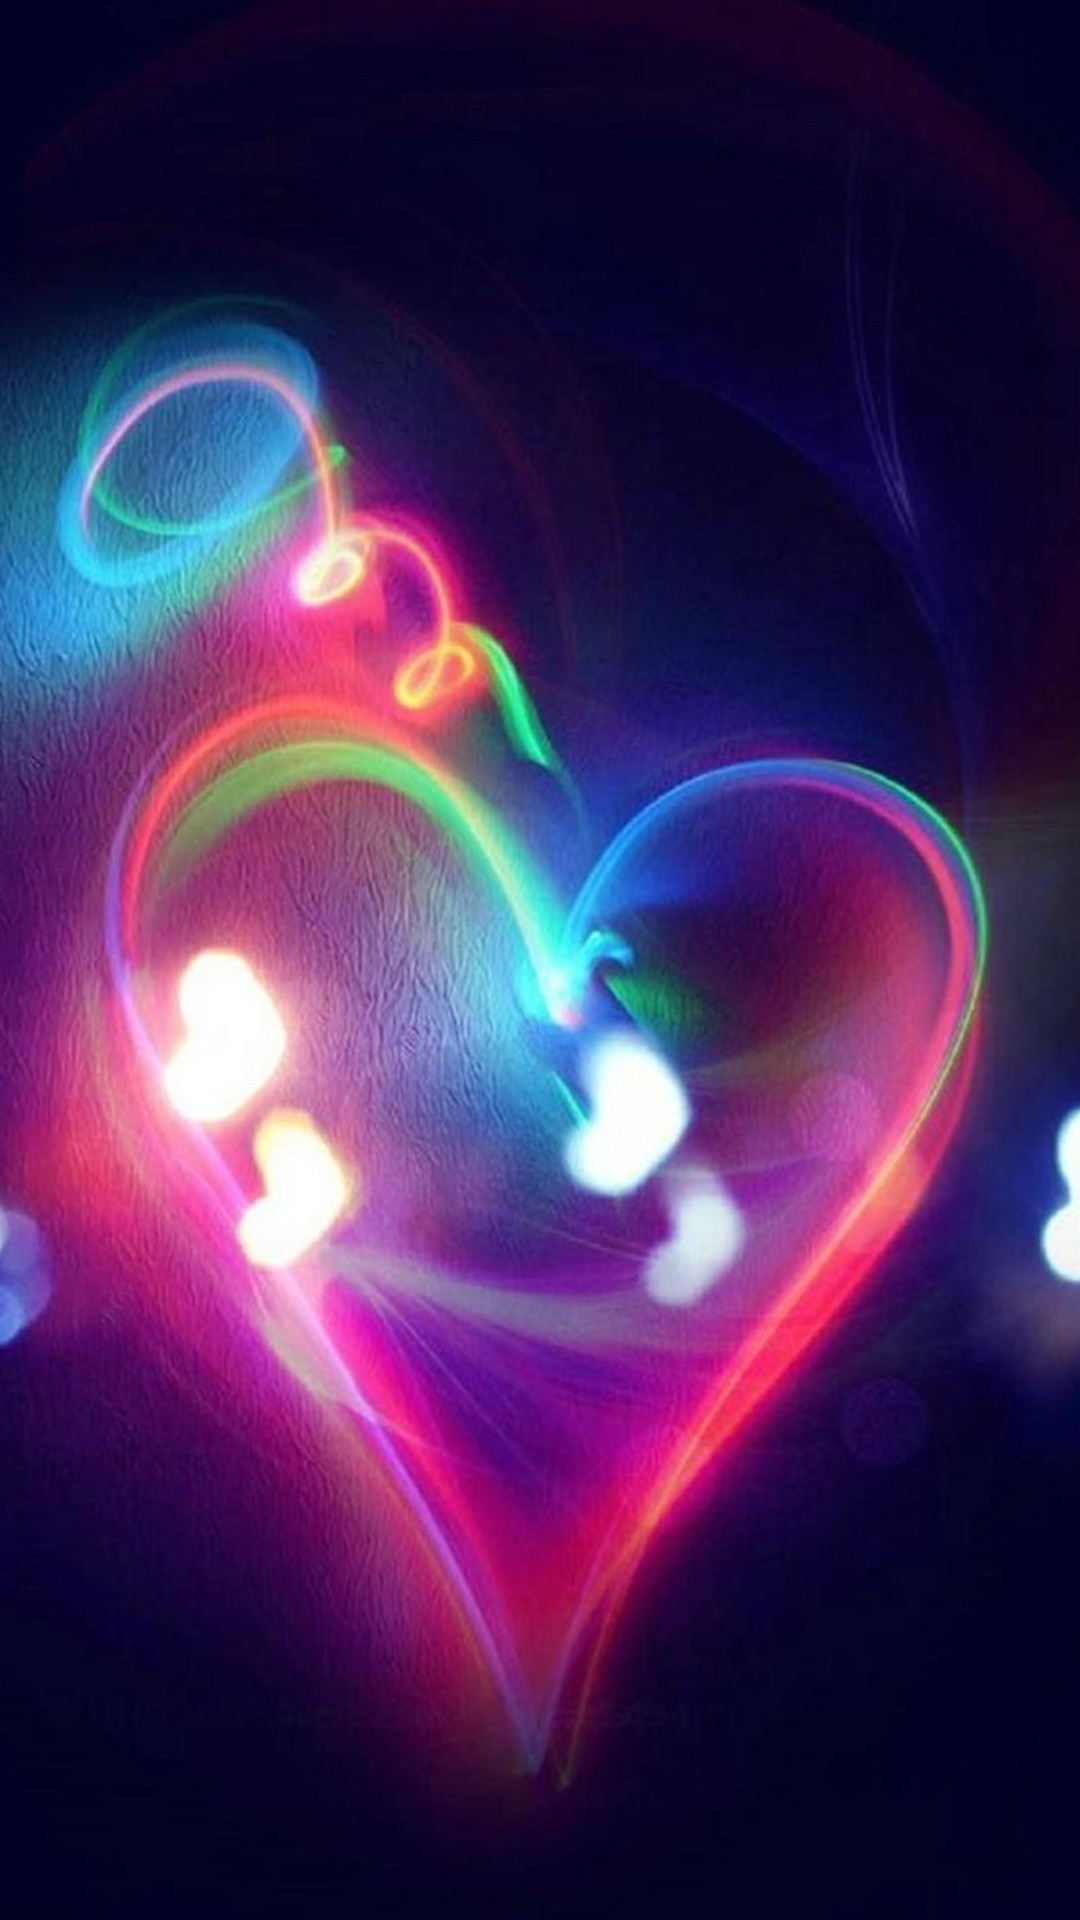 love lights smartphone wallpapers hd ⋆ getphotos